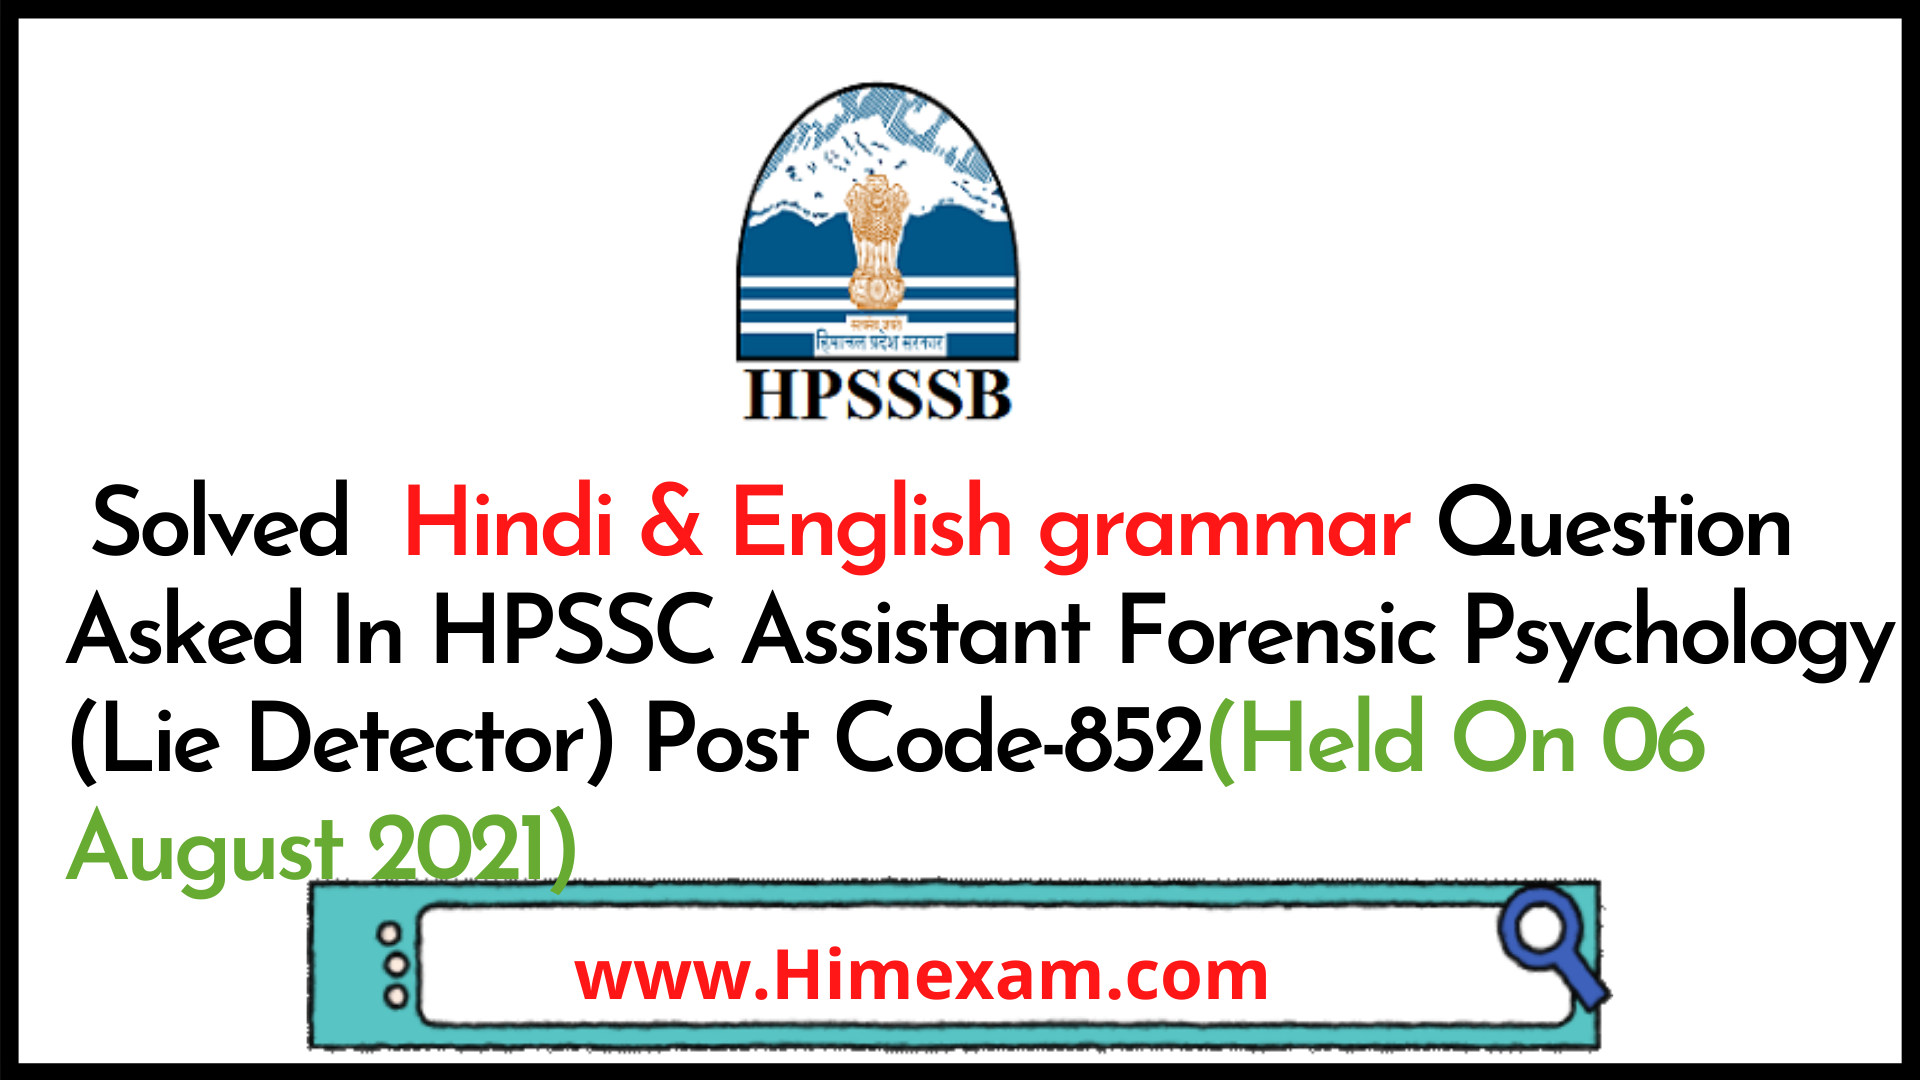 Solved Hindi & English grammar Question Asked In HPSSC Assistant Forensic Psychology (Lie Detector) Post Code-852